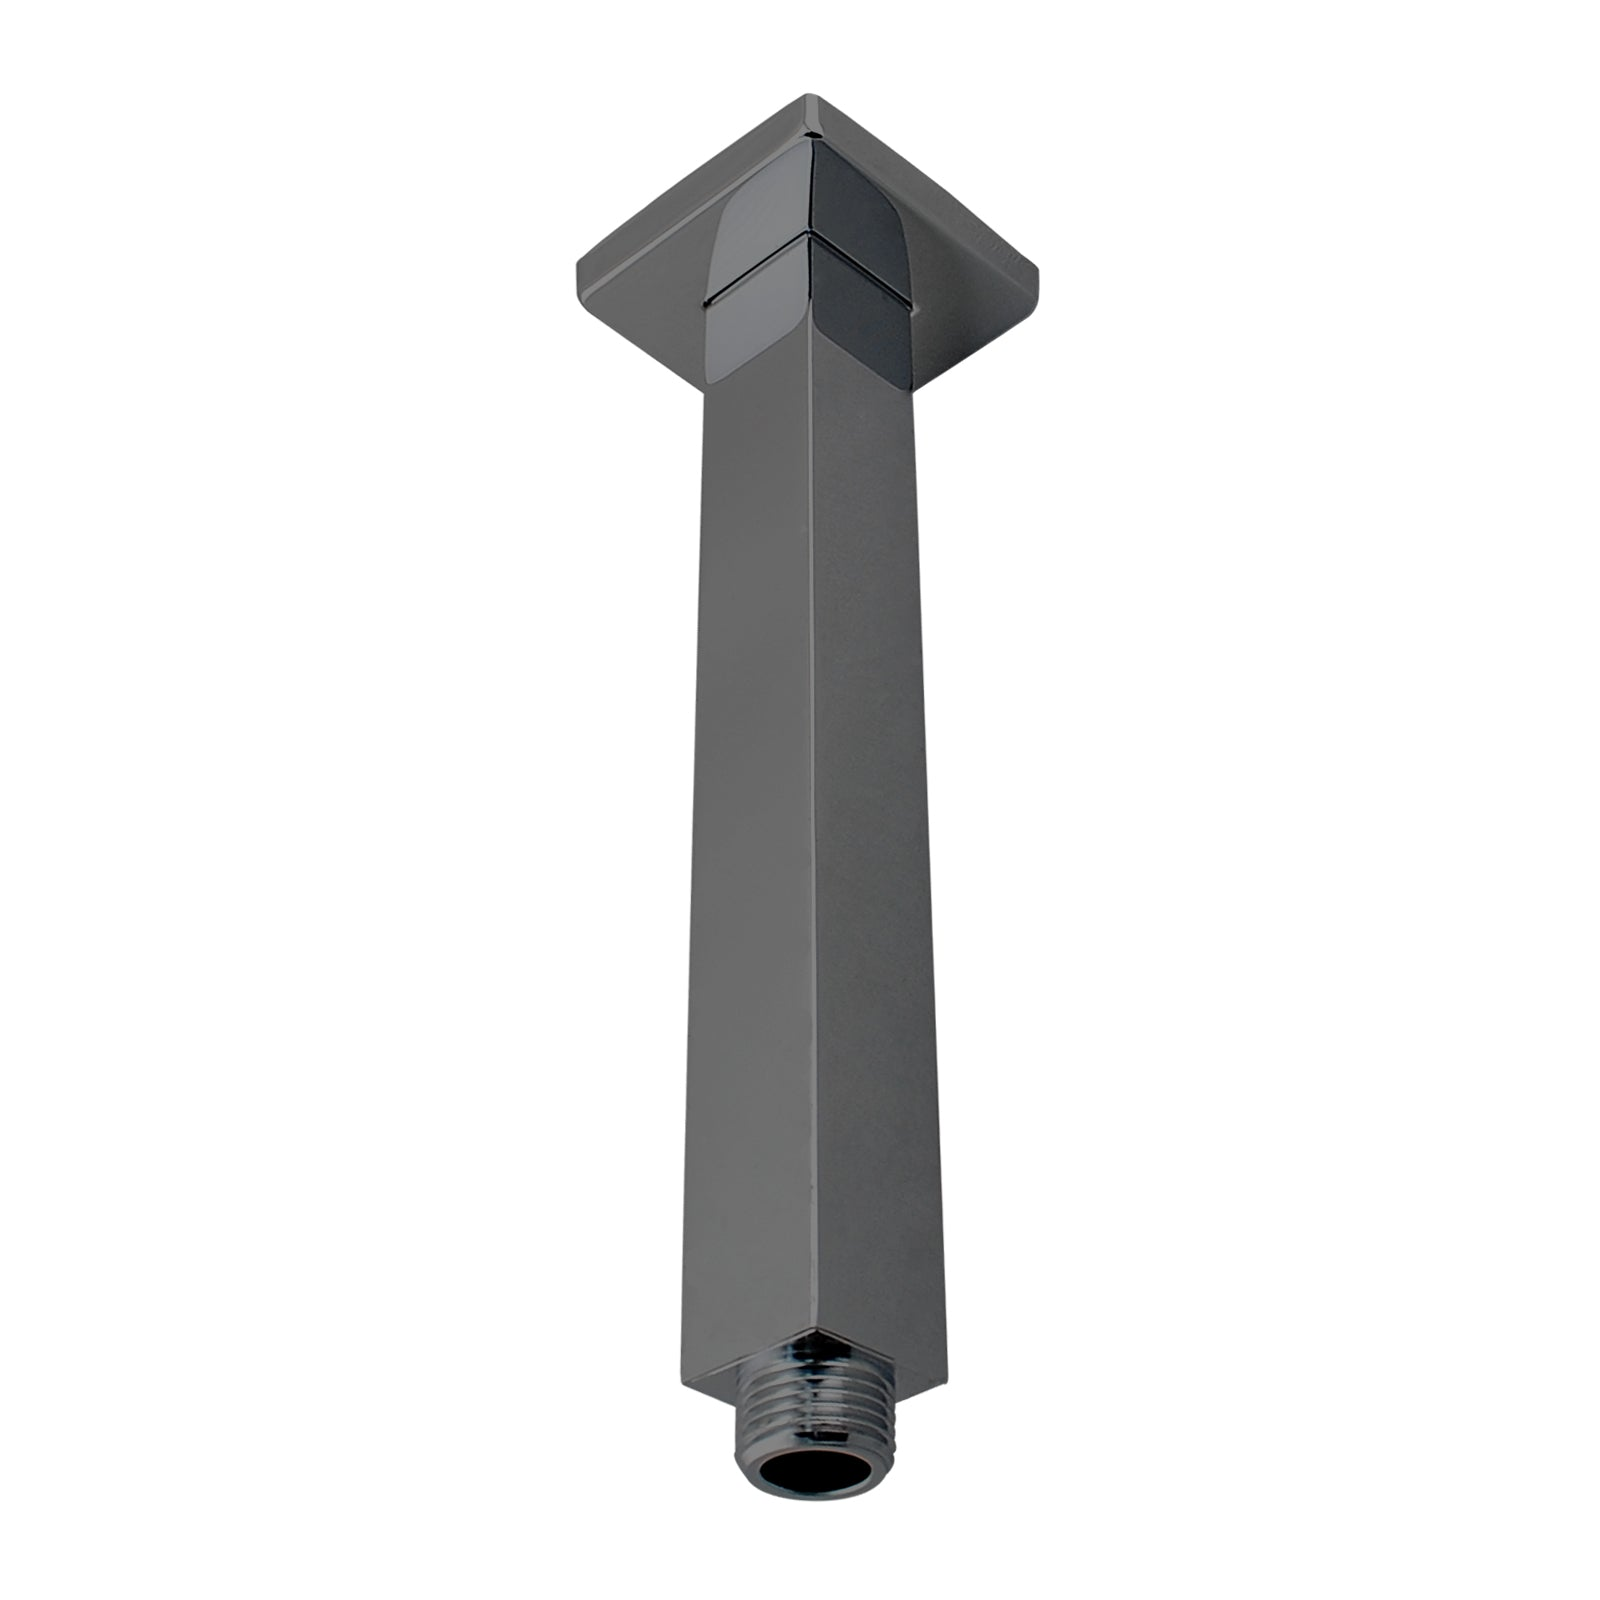 Norico Cavallo Gun Metal Grey Square Ceiling Shower Arm 200mm